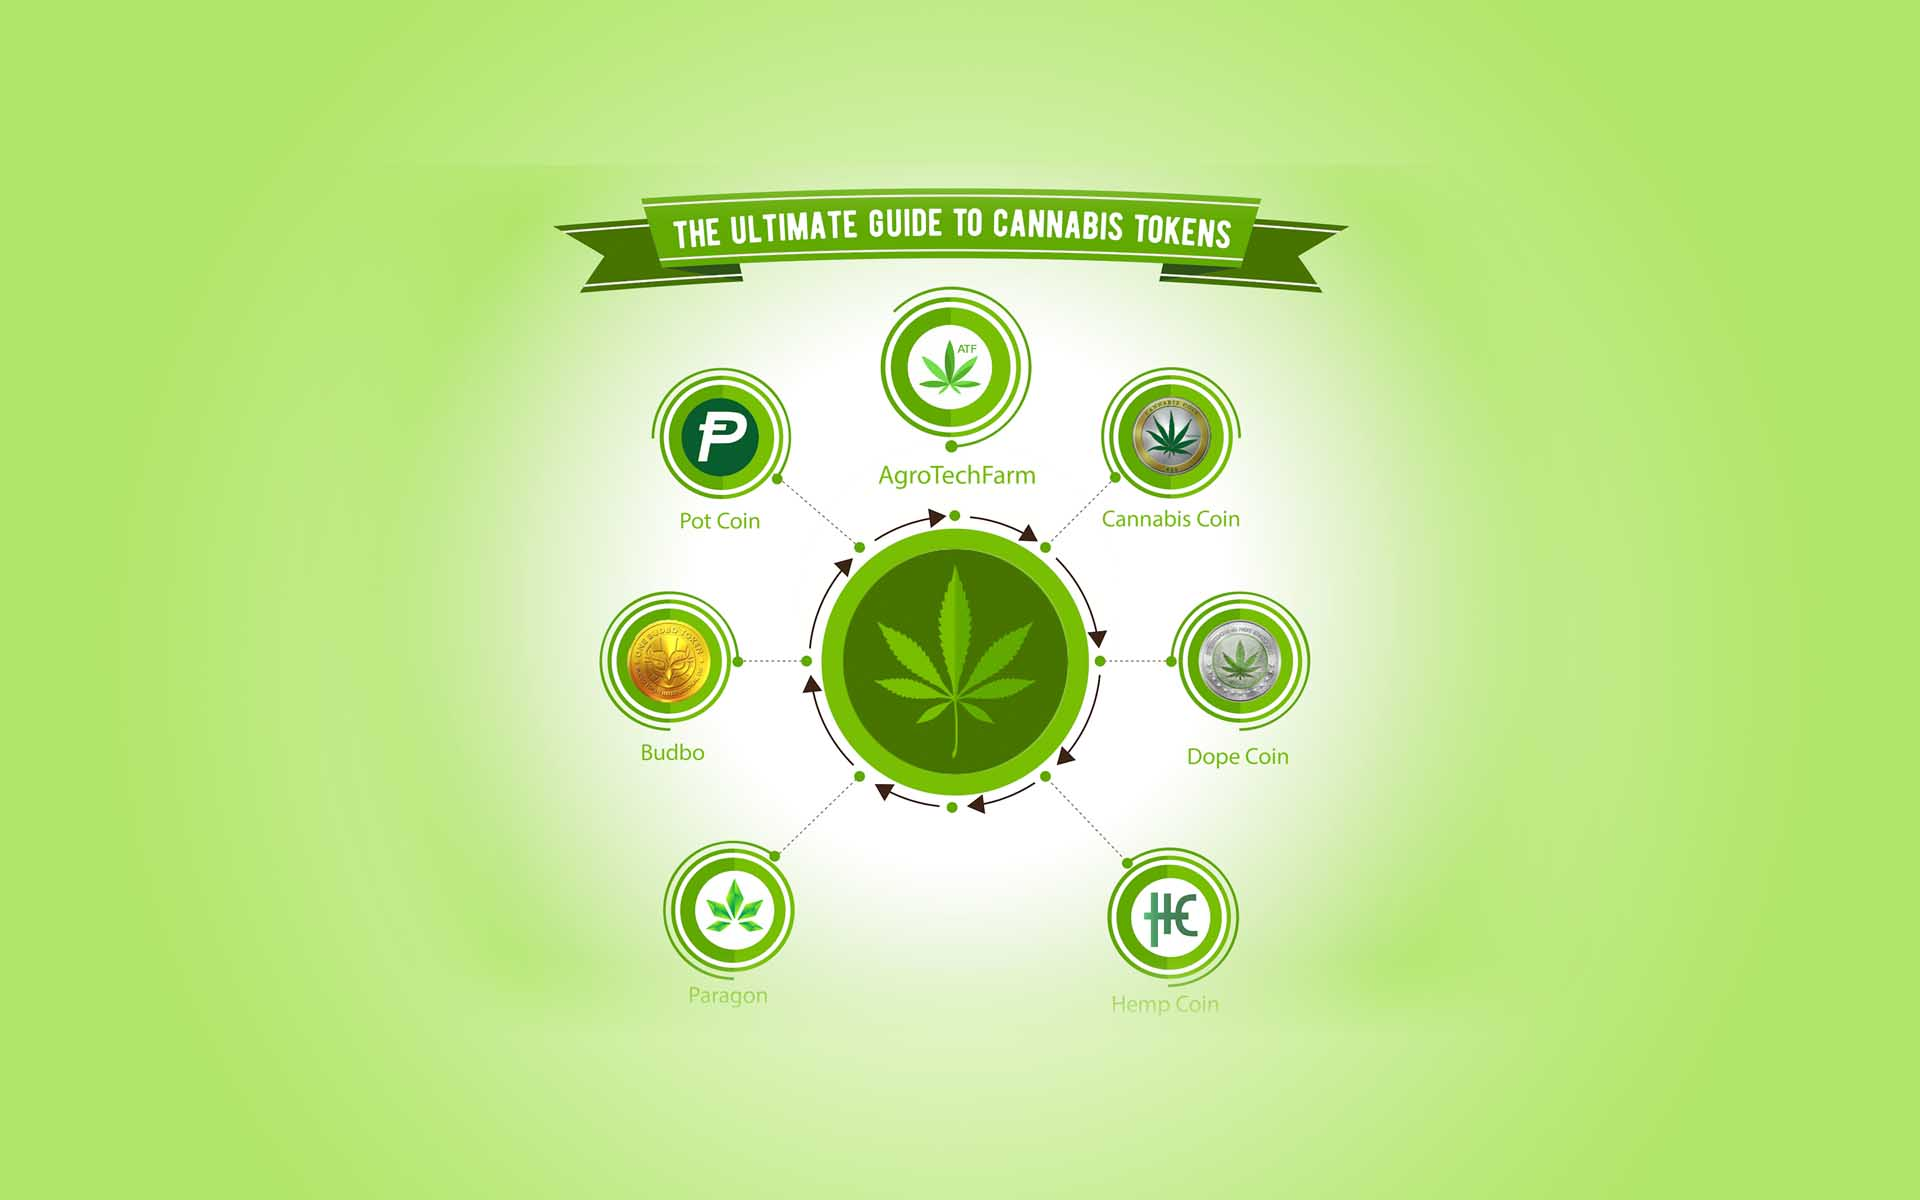 The Ultimate Guide to Cannabis Tokens